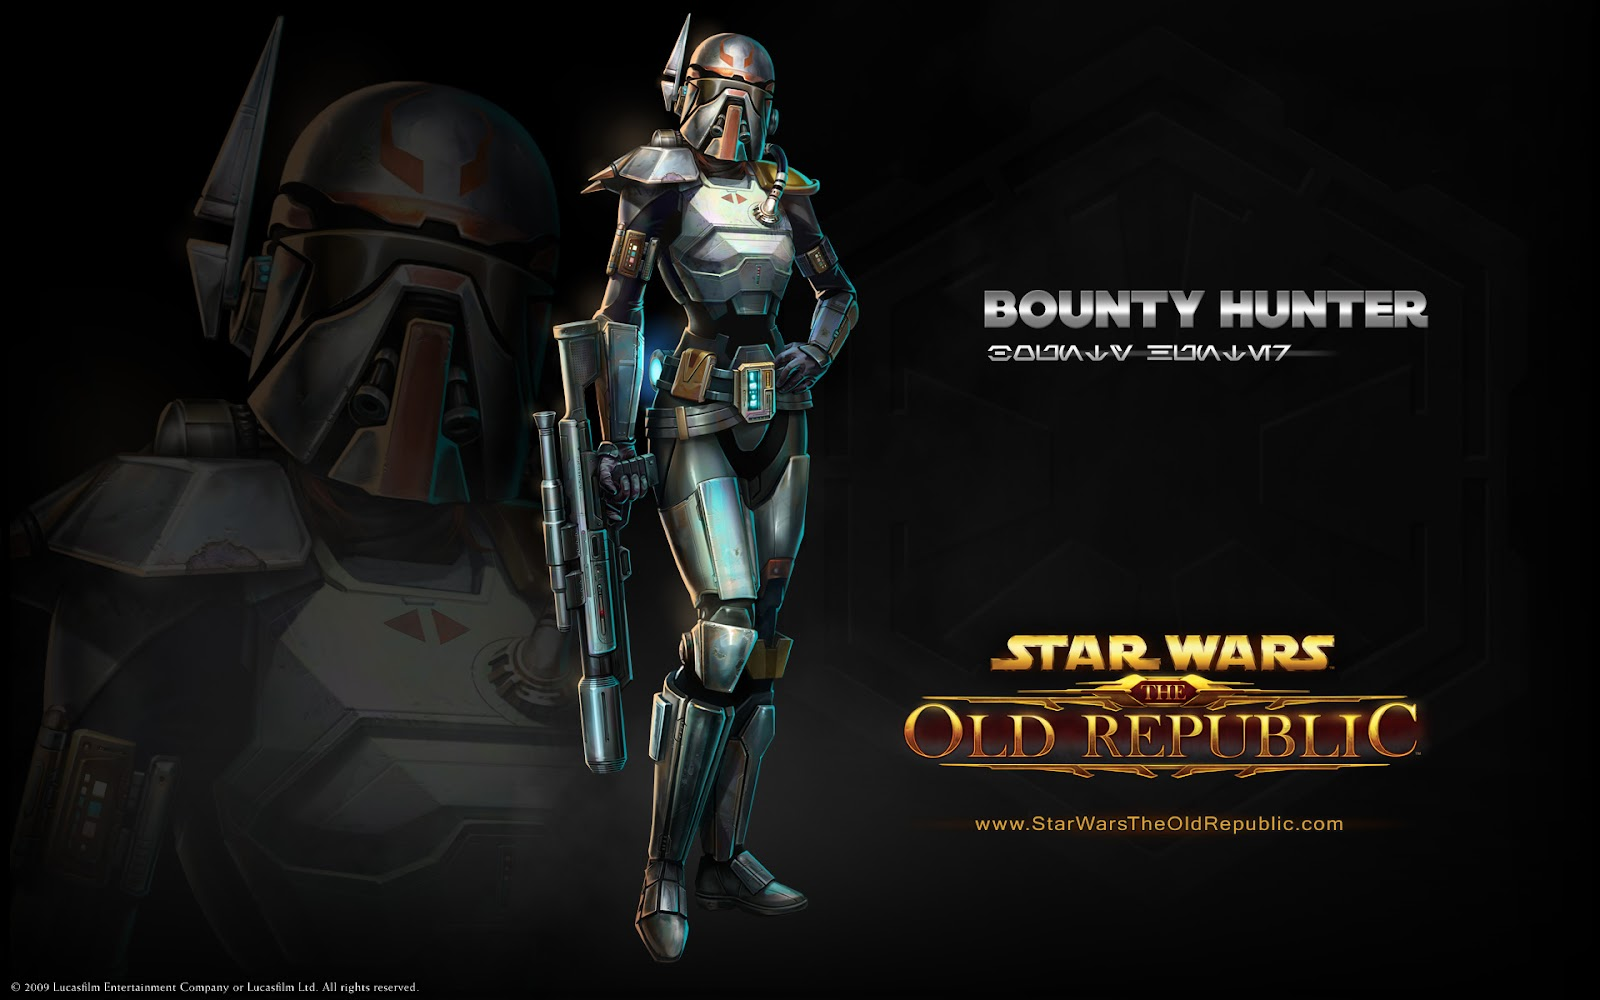 http://3.bp.blogspot.com/-z5P0OeTC_p8/TjGkB-c2H-I/AAAAAAAAYso/7sND77fHO0E/s1600/Star+Wars+-+The+Old+Republic+Wallpapers+%252836%2529.jpg